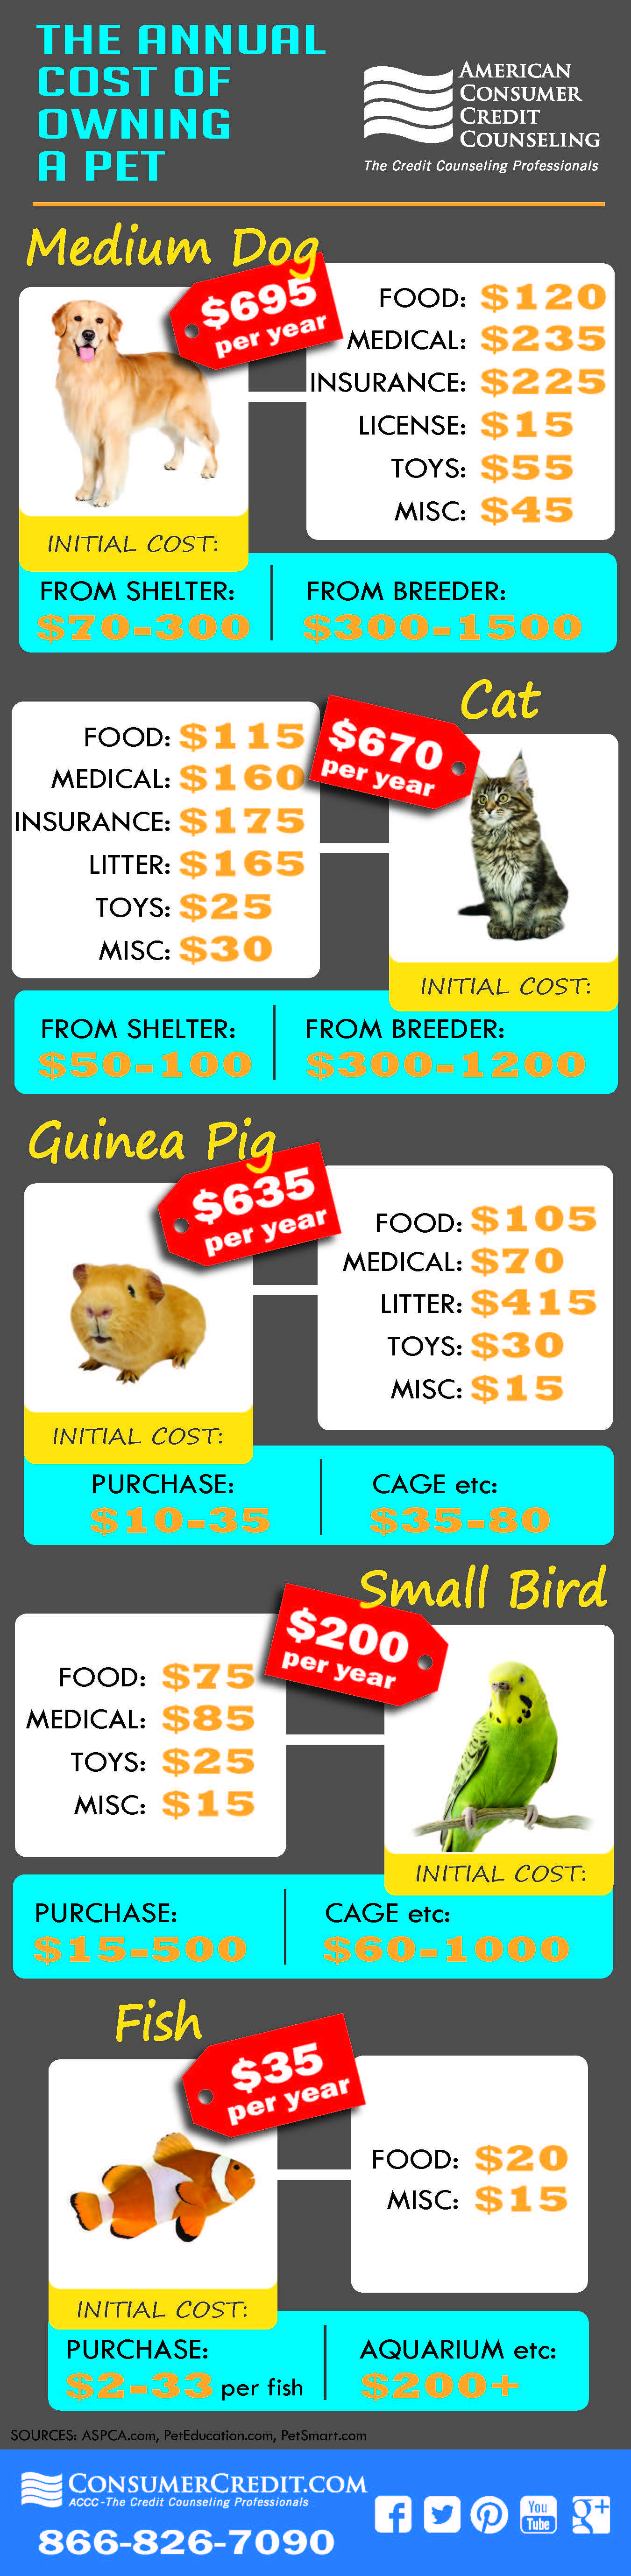 Cost Of Owning A Pet Can Be Surprising Check Your Budget